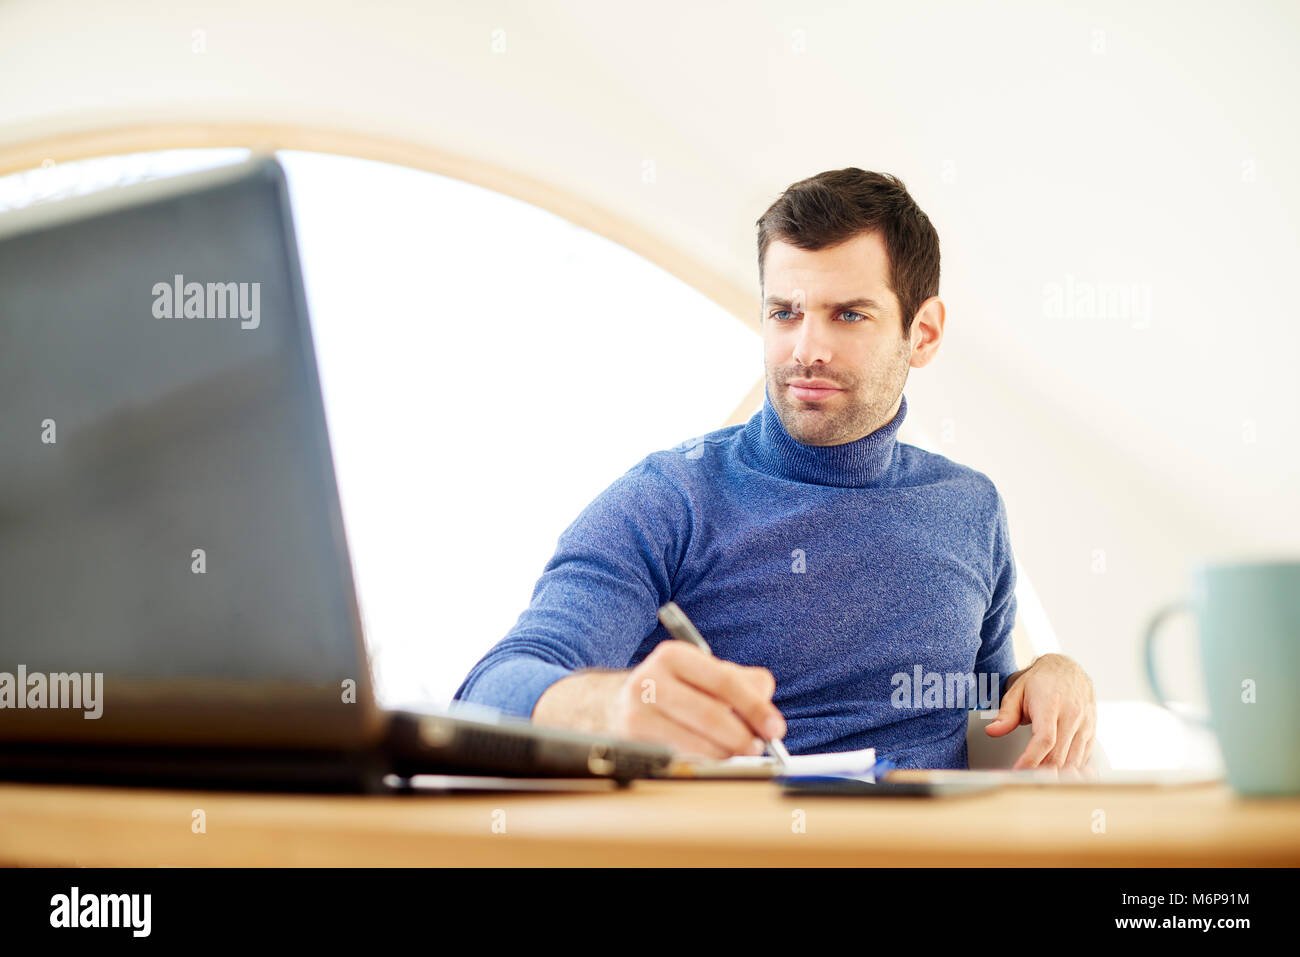 Portrait of casual young man wearing turtleneck sweater and looking thoughtul while working onl laptop and doing - Stock Image